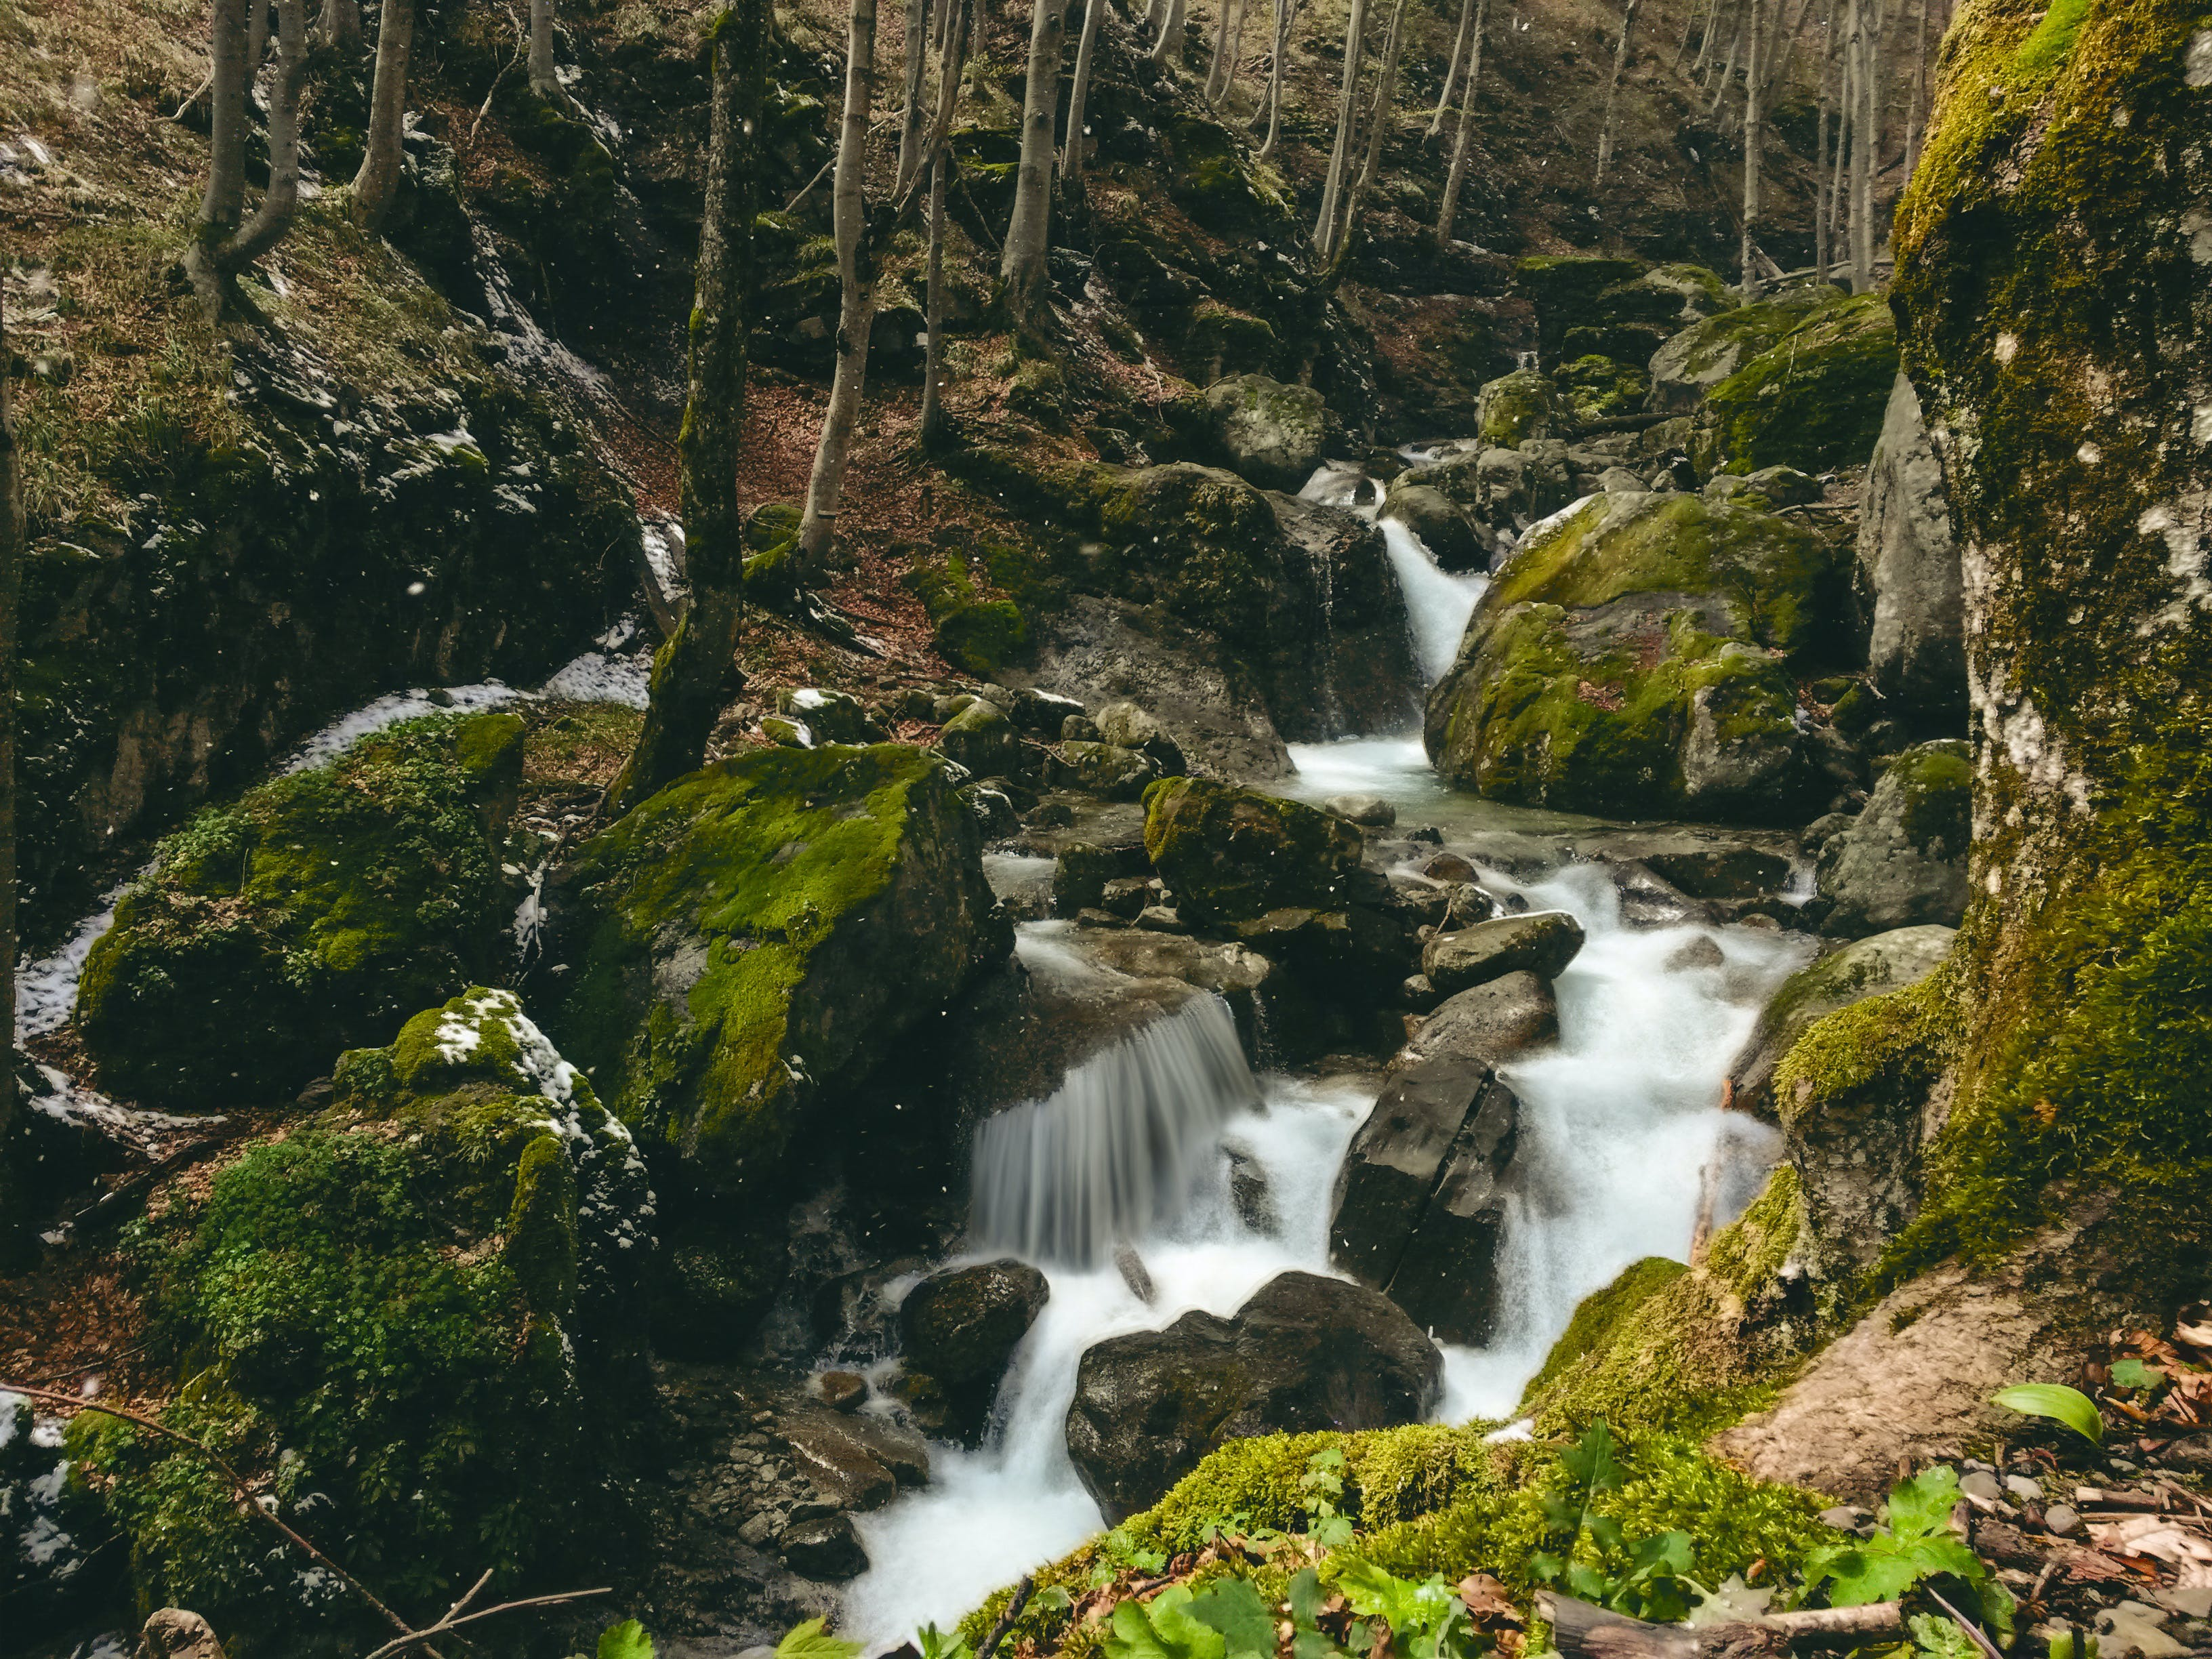 Free stock photo of mountain river forest rock green moss waterfall